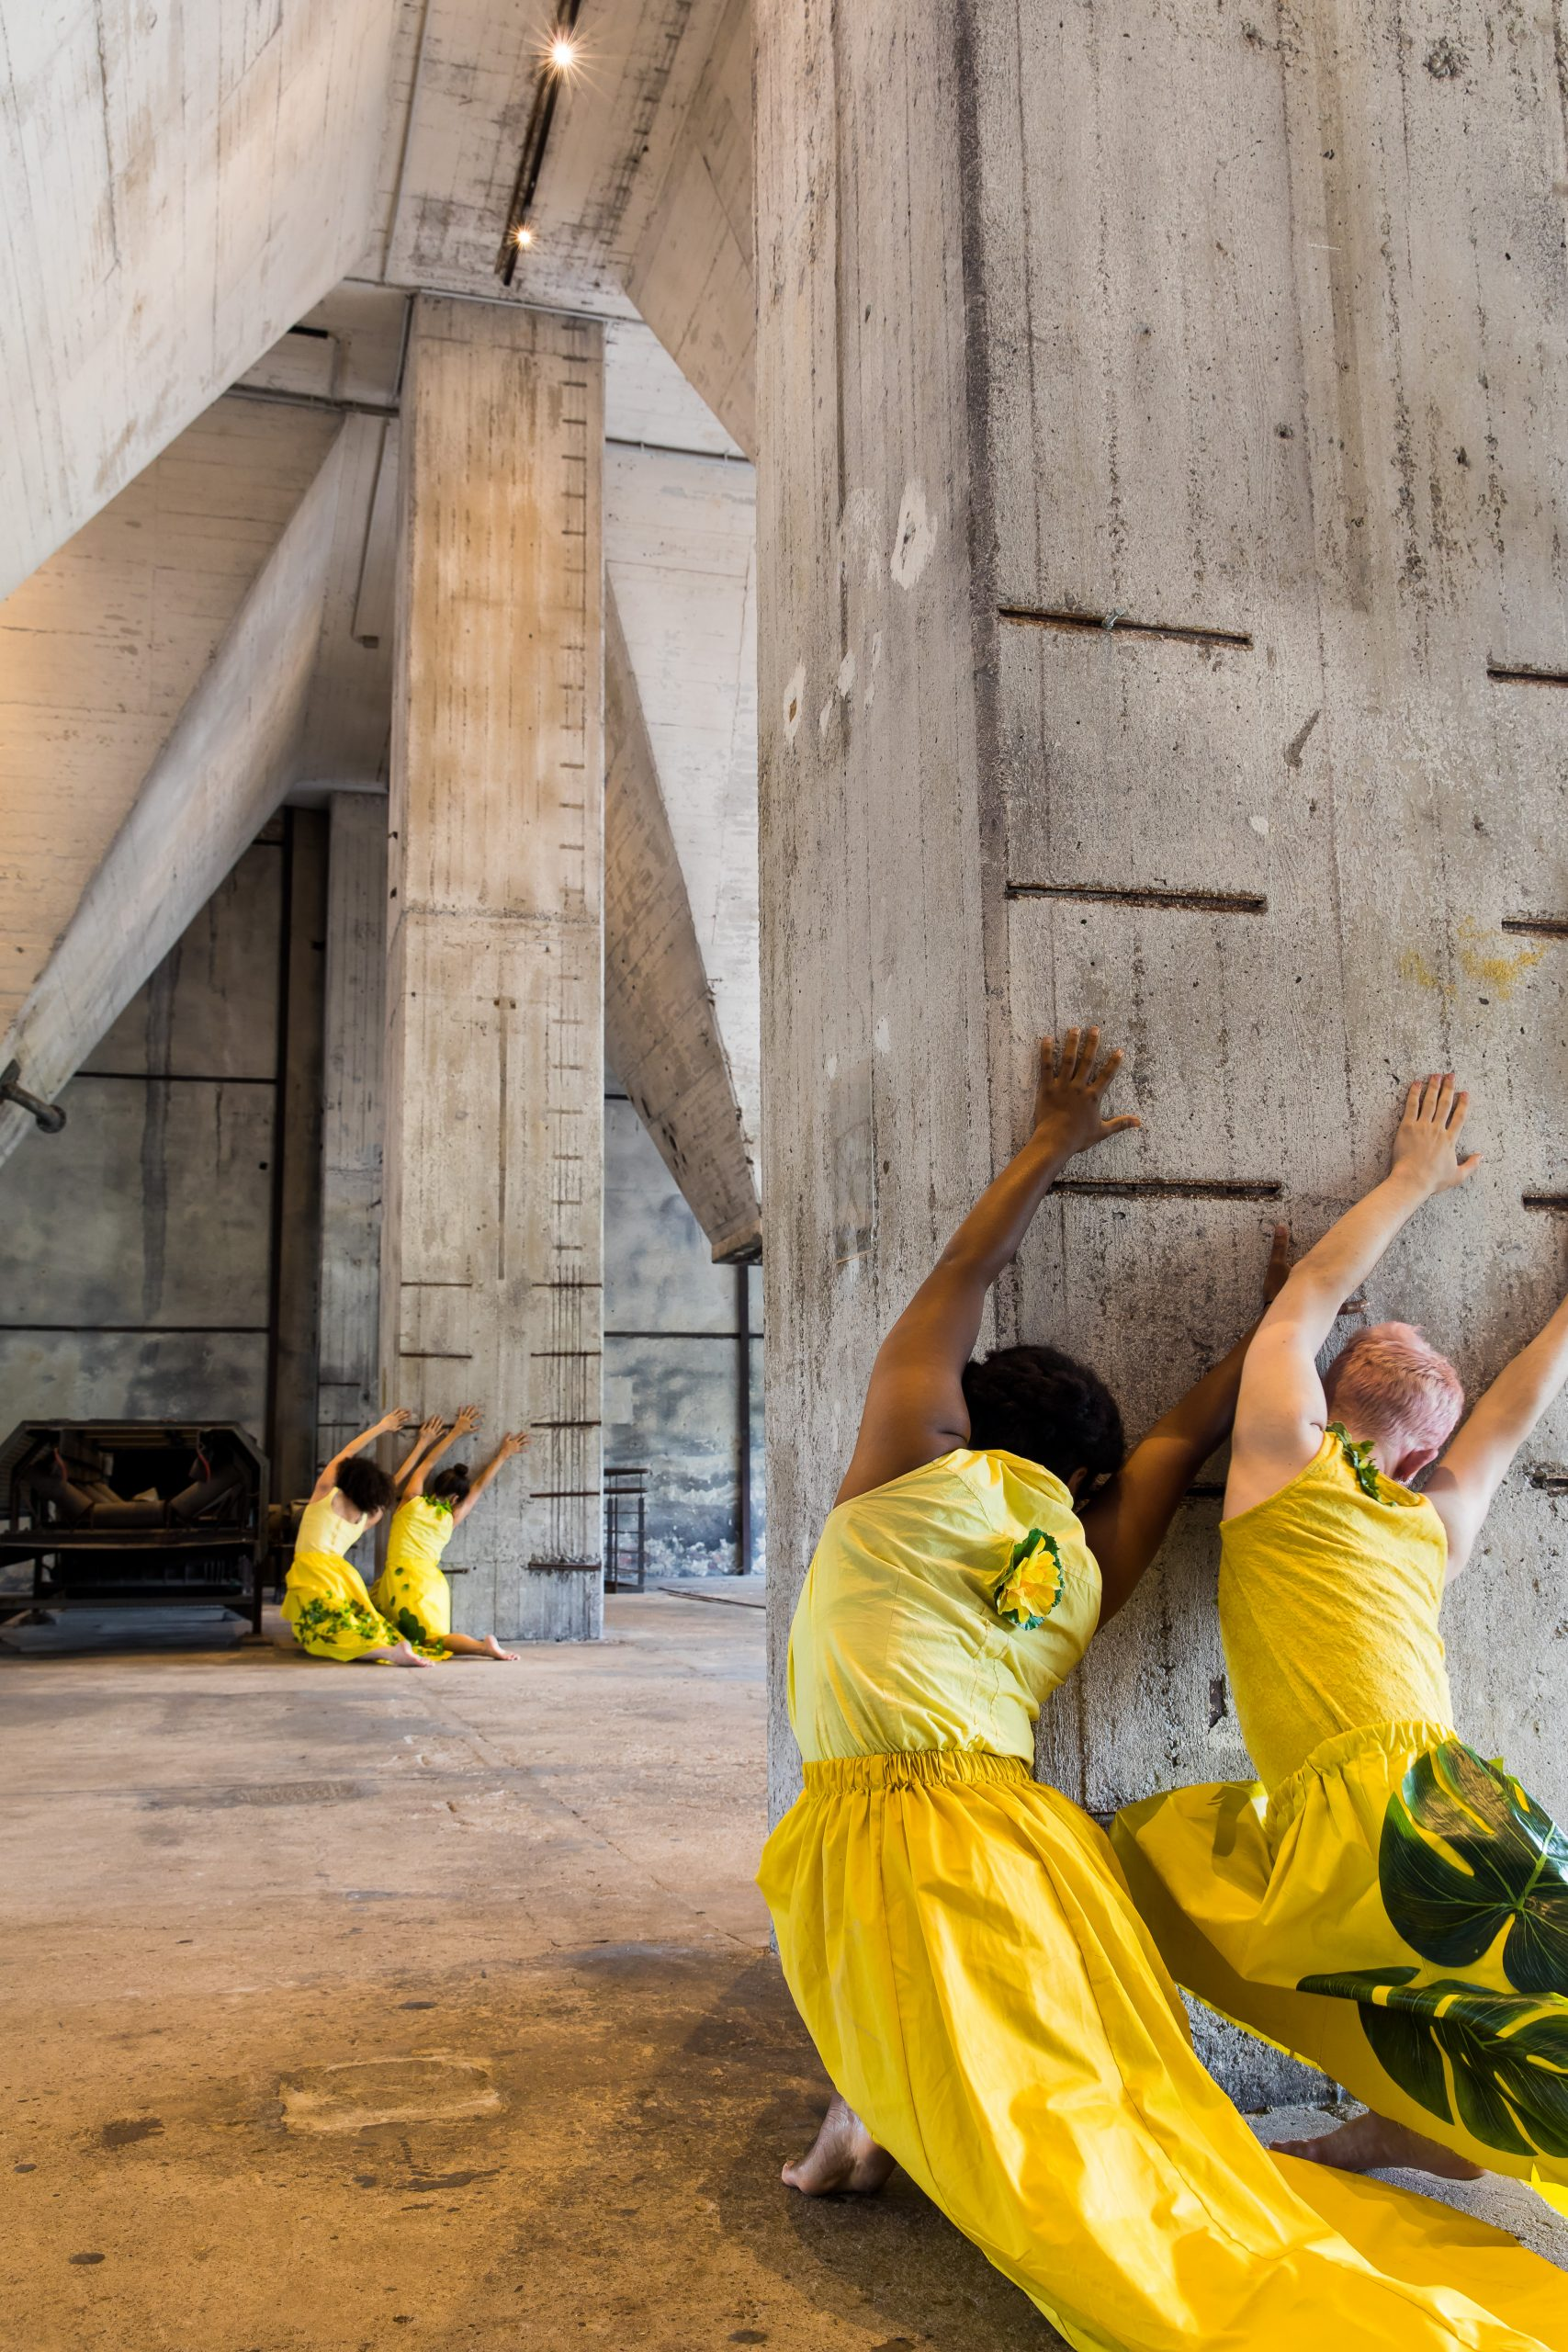 Dancers in yellow lean against pillars in a large concrete space, hands up and facing away from the camera, arching their bodies to the left.